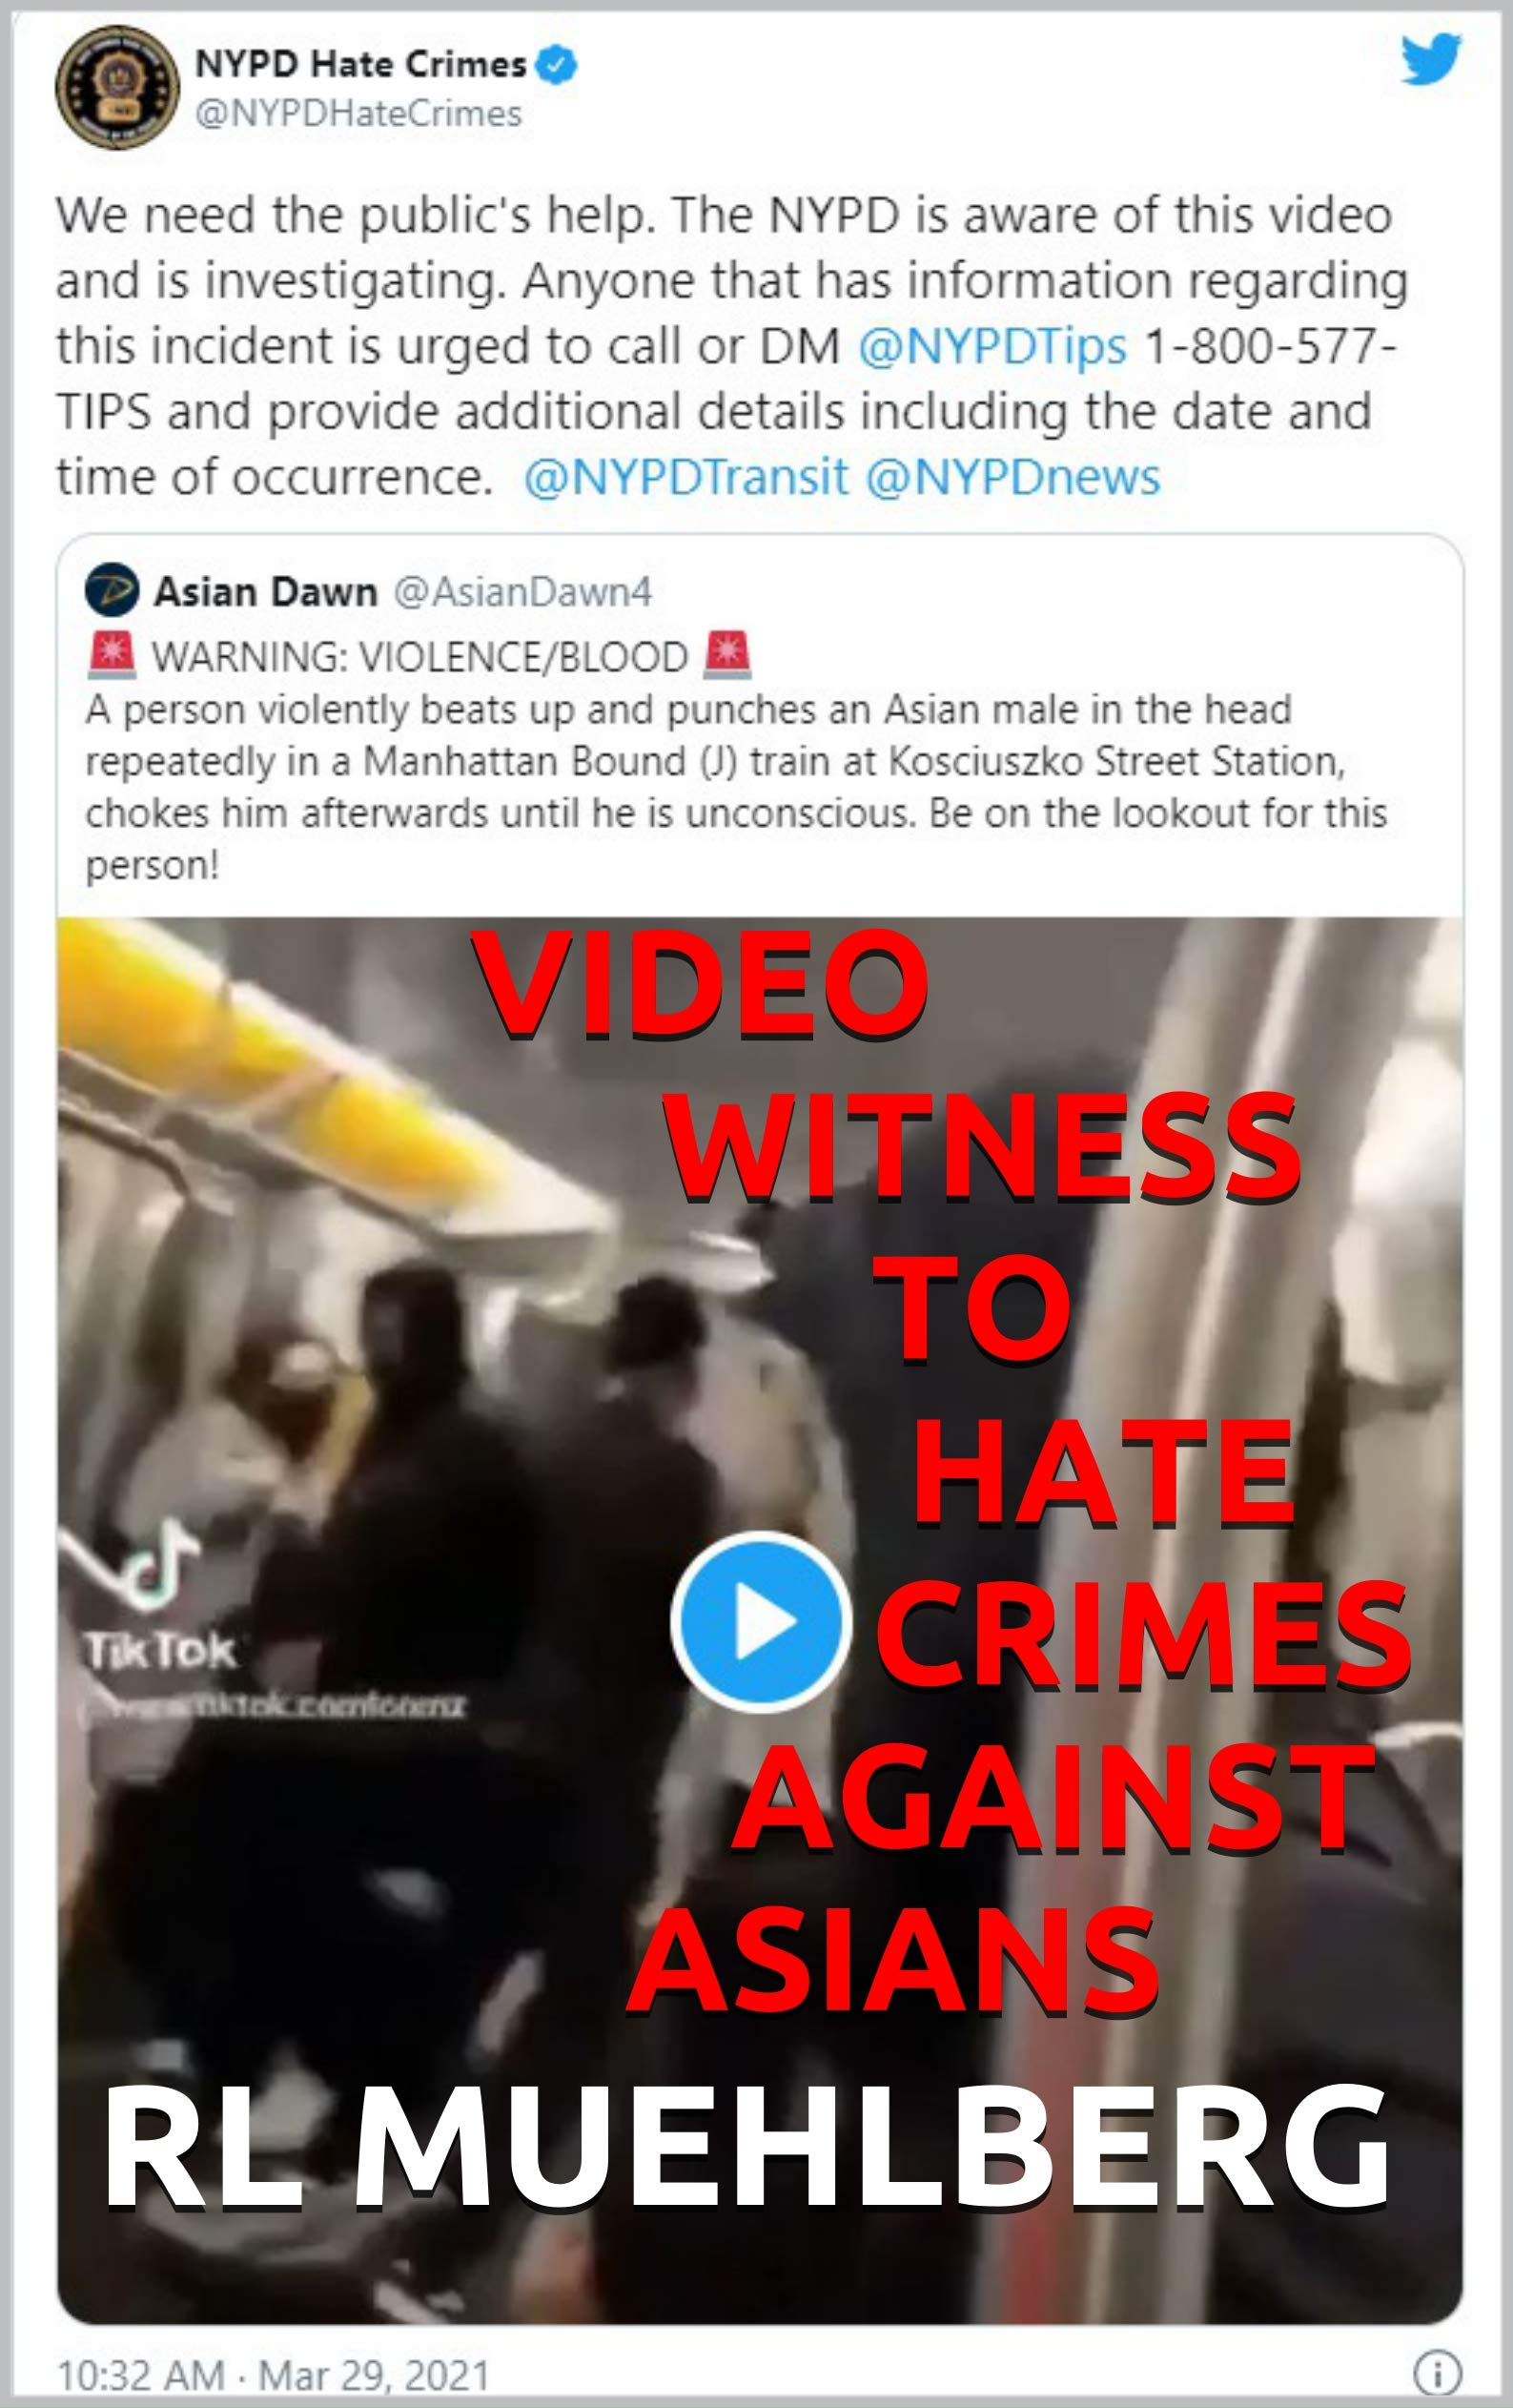 Video Witness to Hate Crimes Against Asians (monograph against hate)